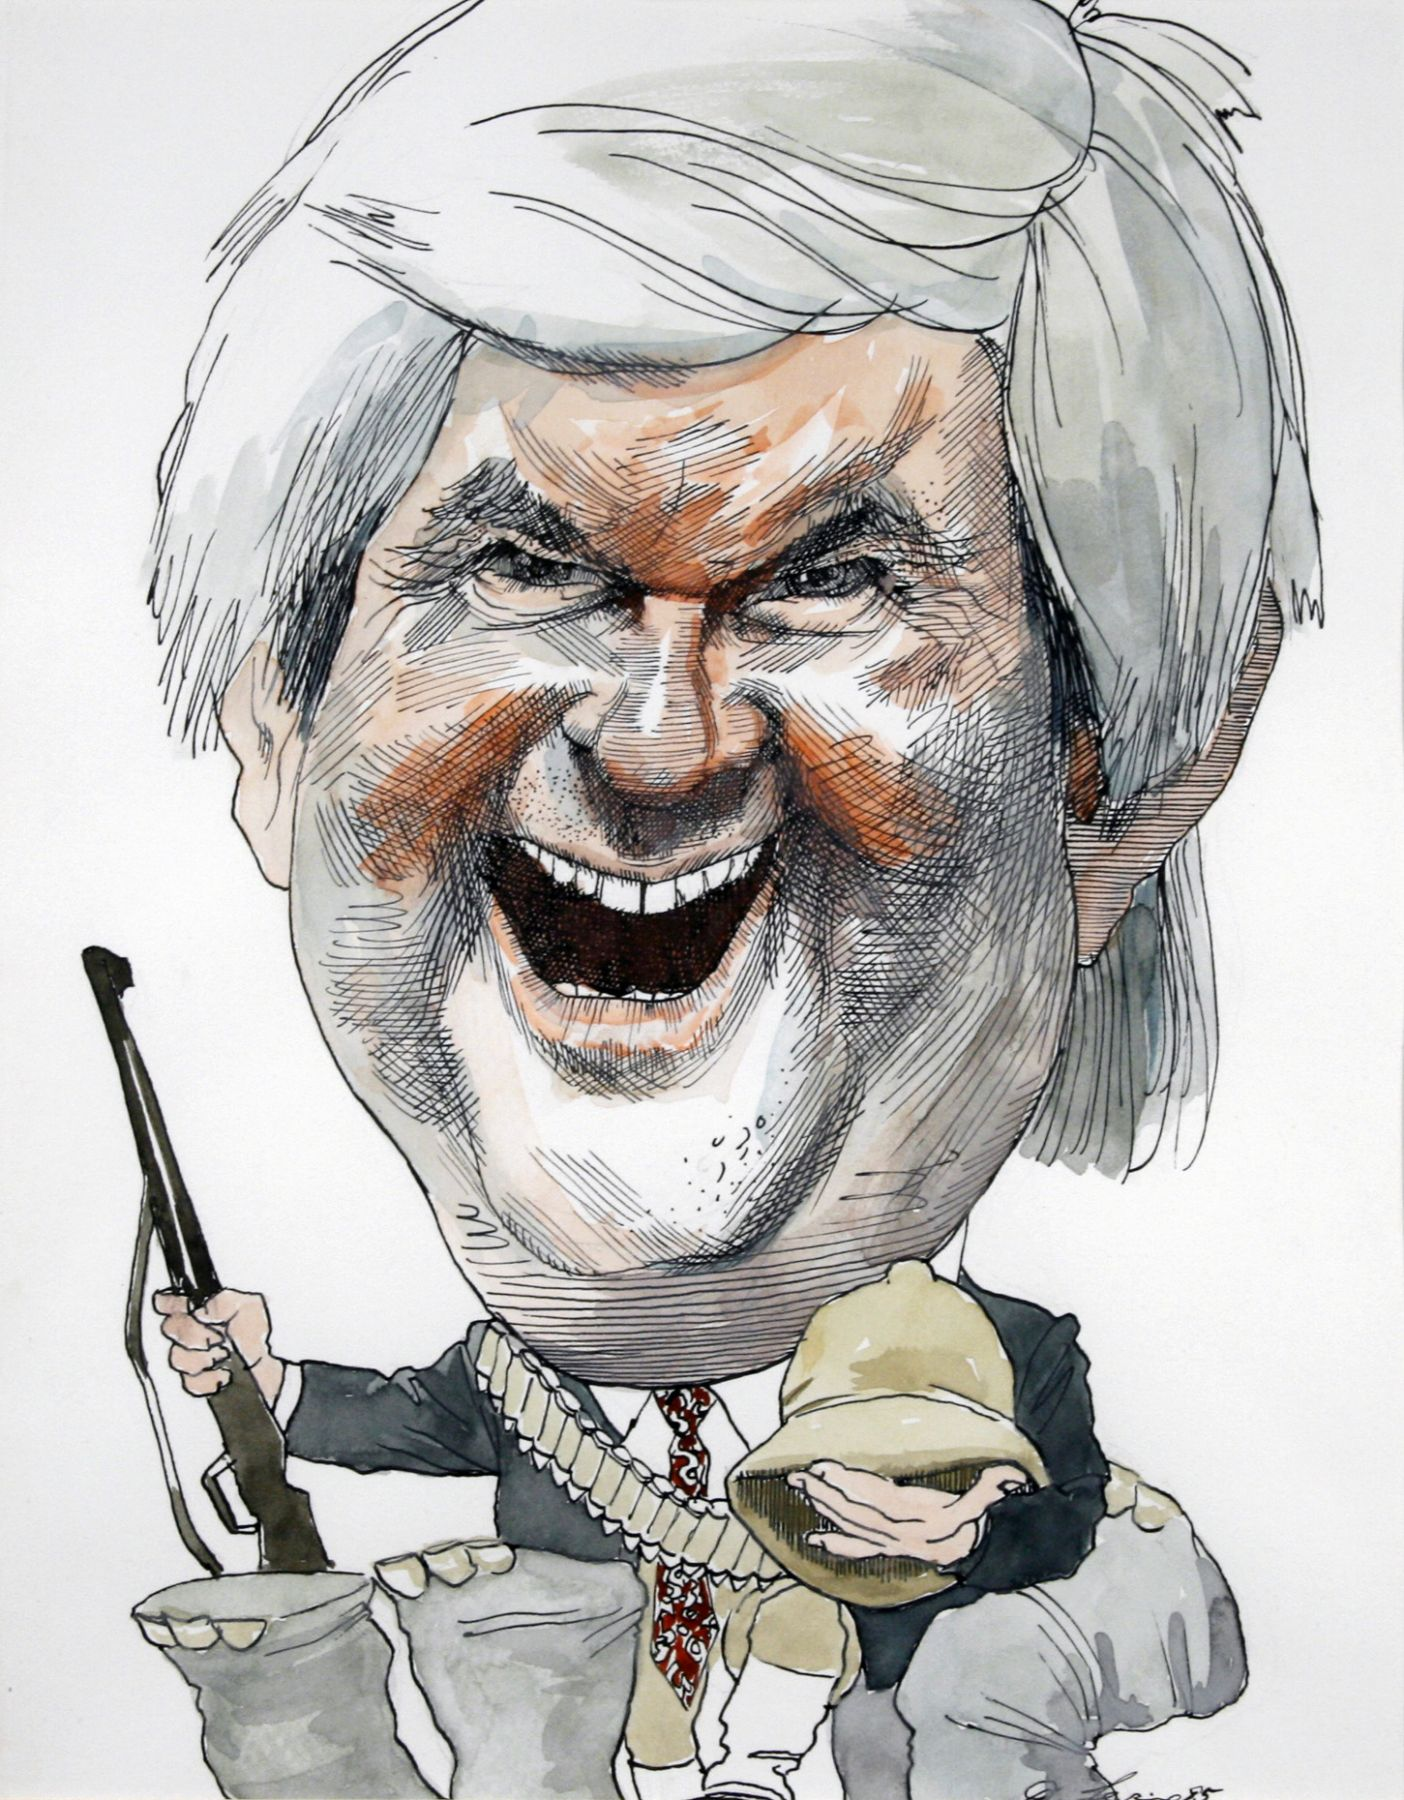 David Levine, Newt Gingrich, 1995, watercolor and pencil on paper, 14 x 11 inches